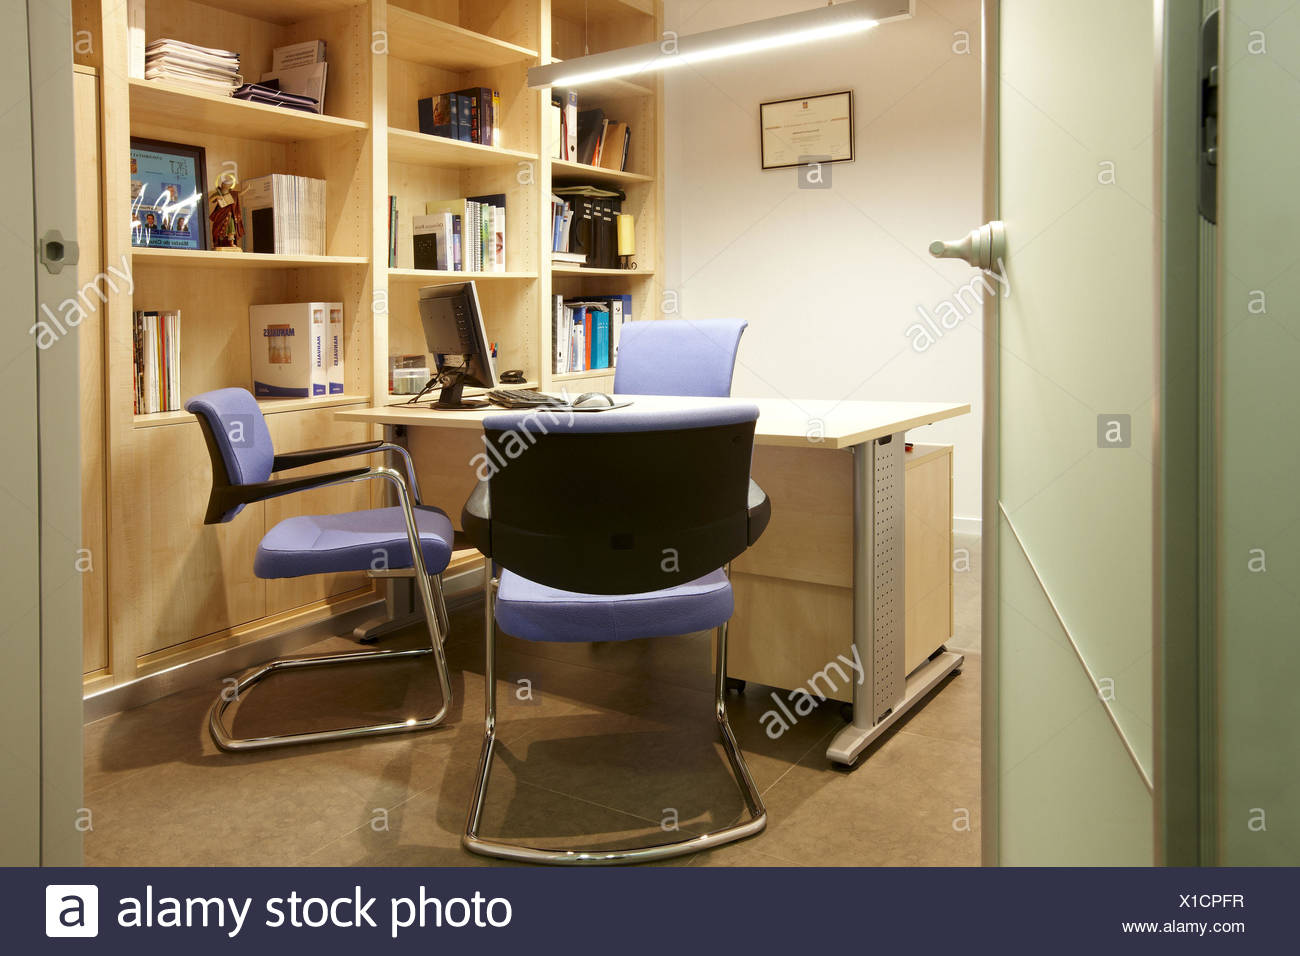 Office in dental clinic - Stock Image